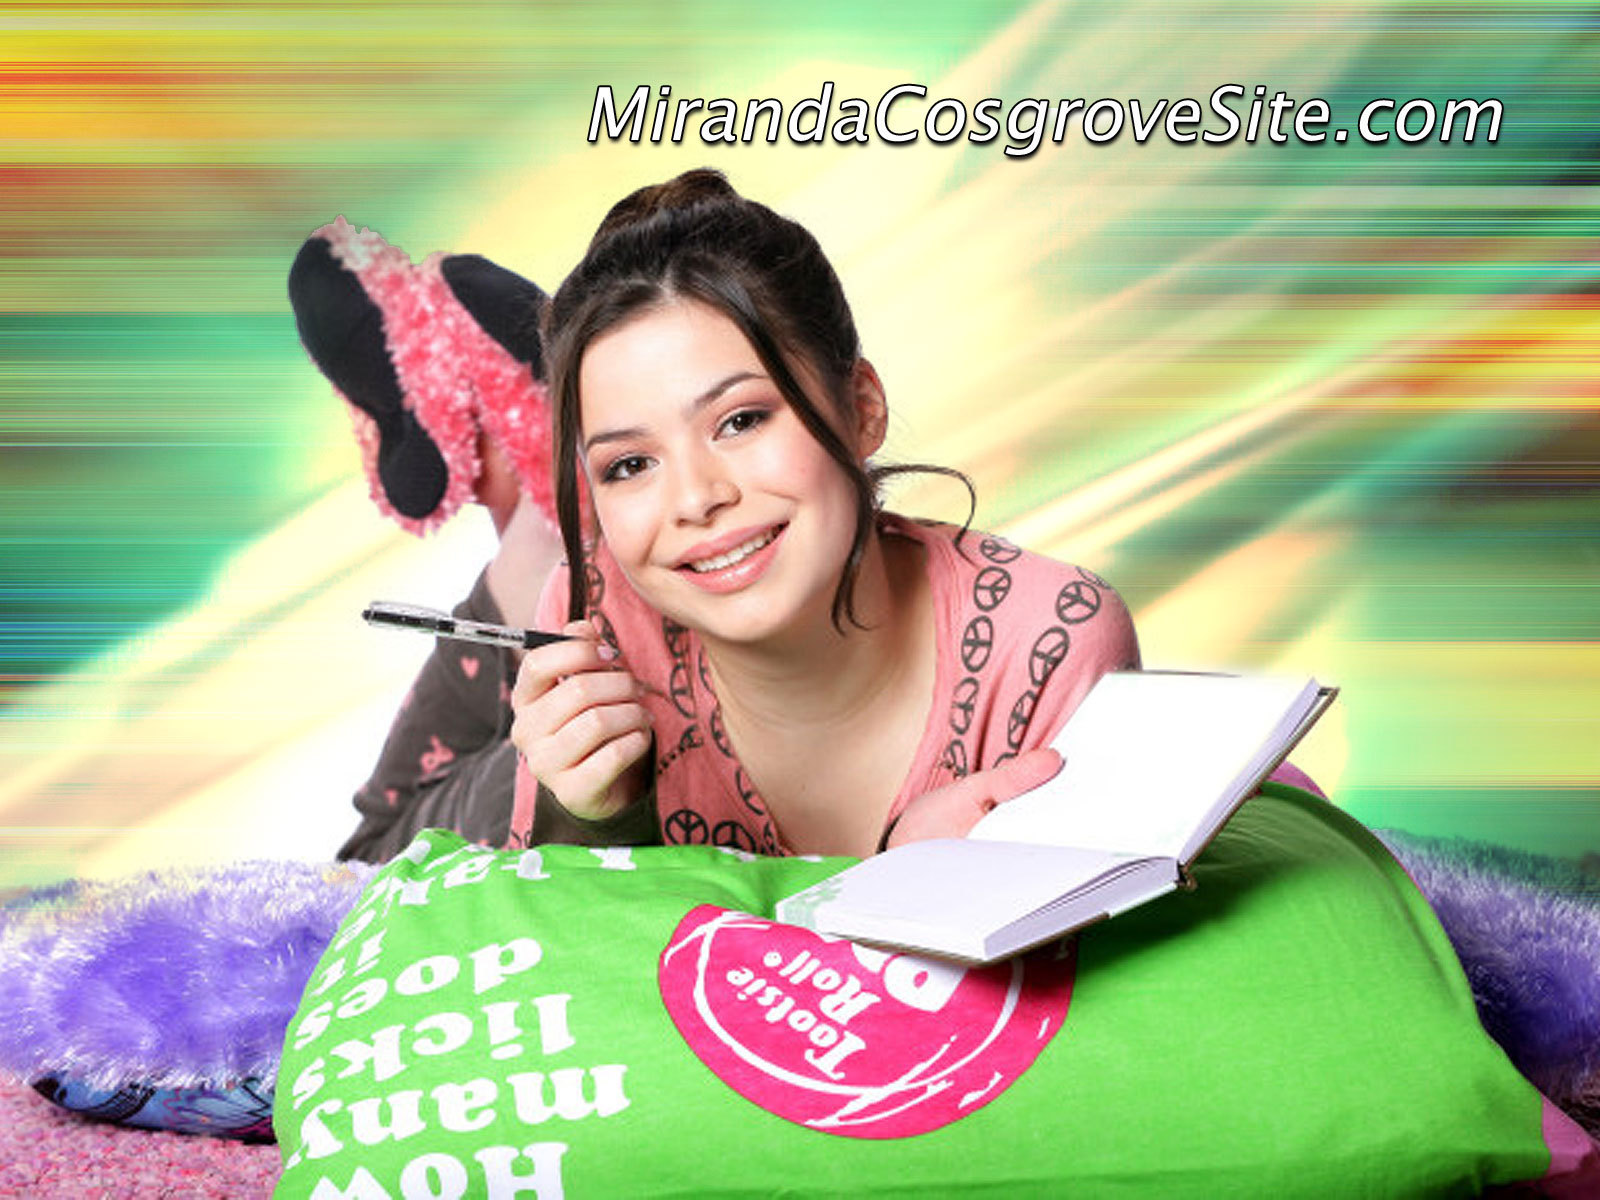 Icarly images fdsg wallpaper photos 9941202 - Icarly wallpaper ...